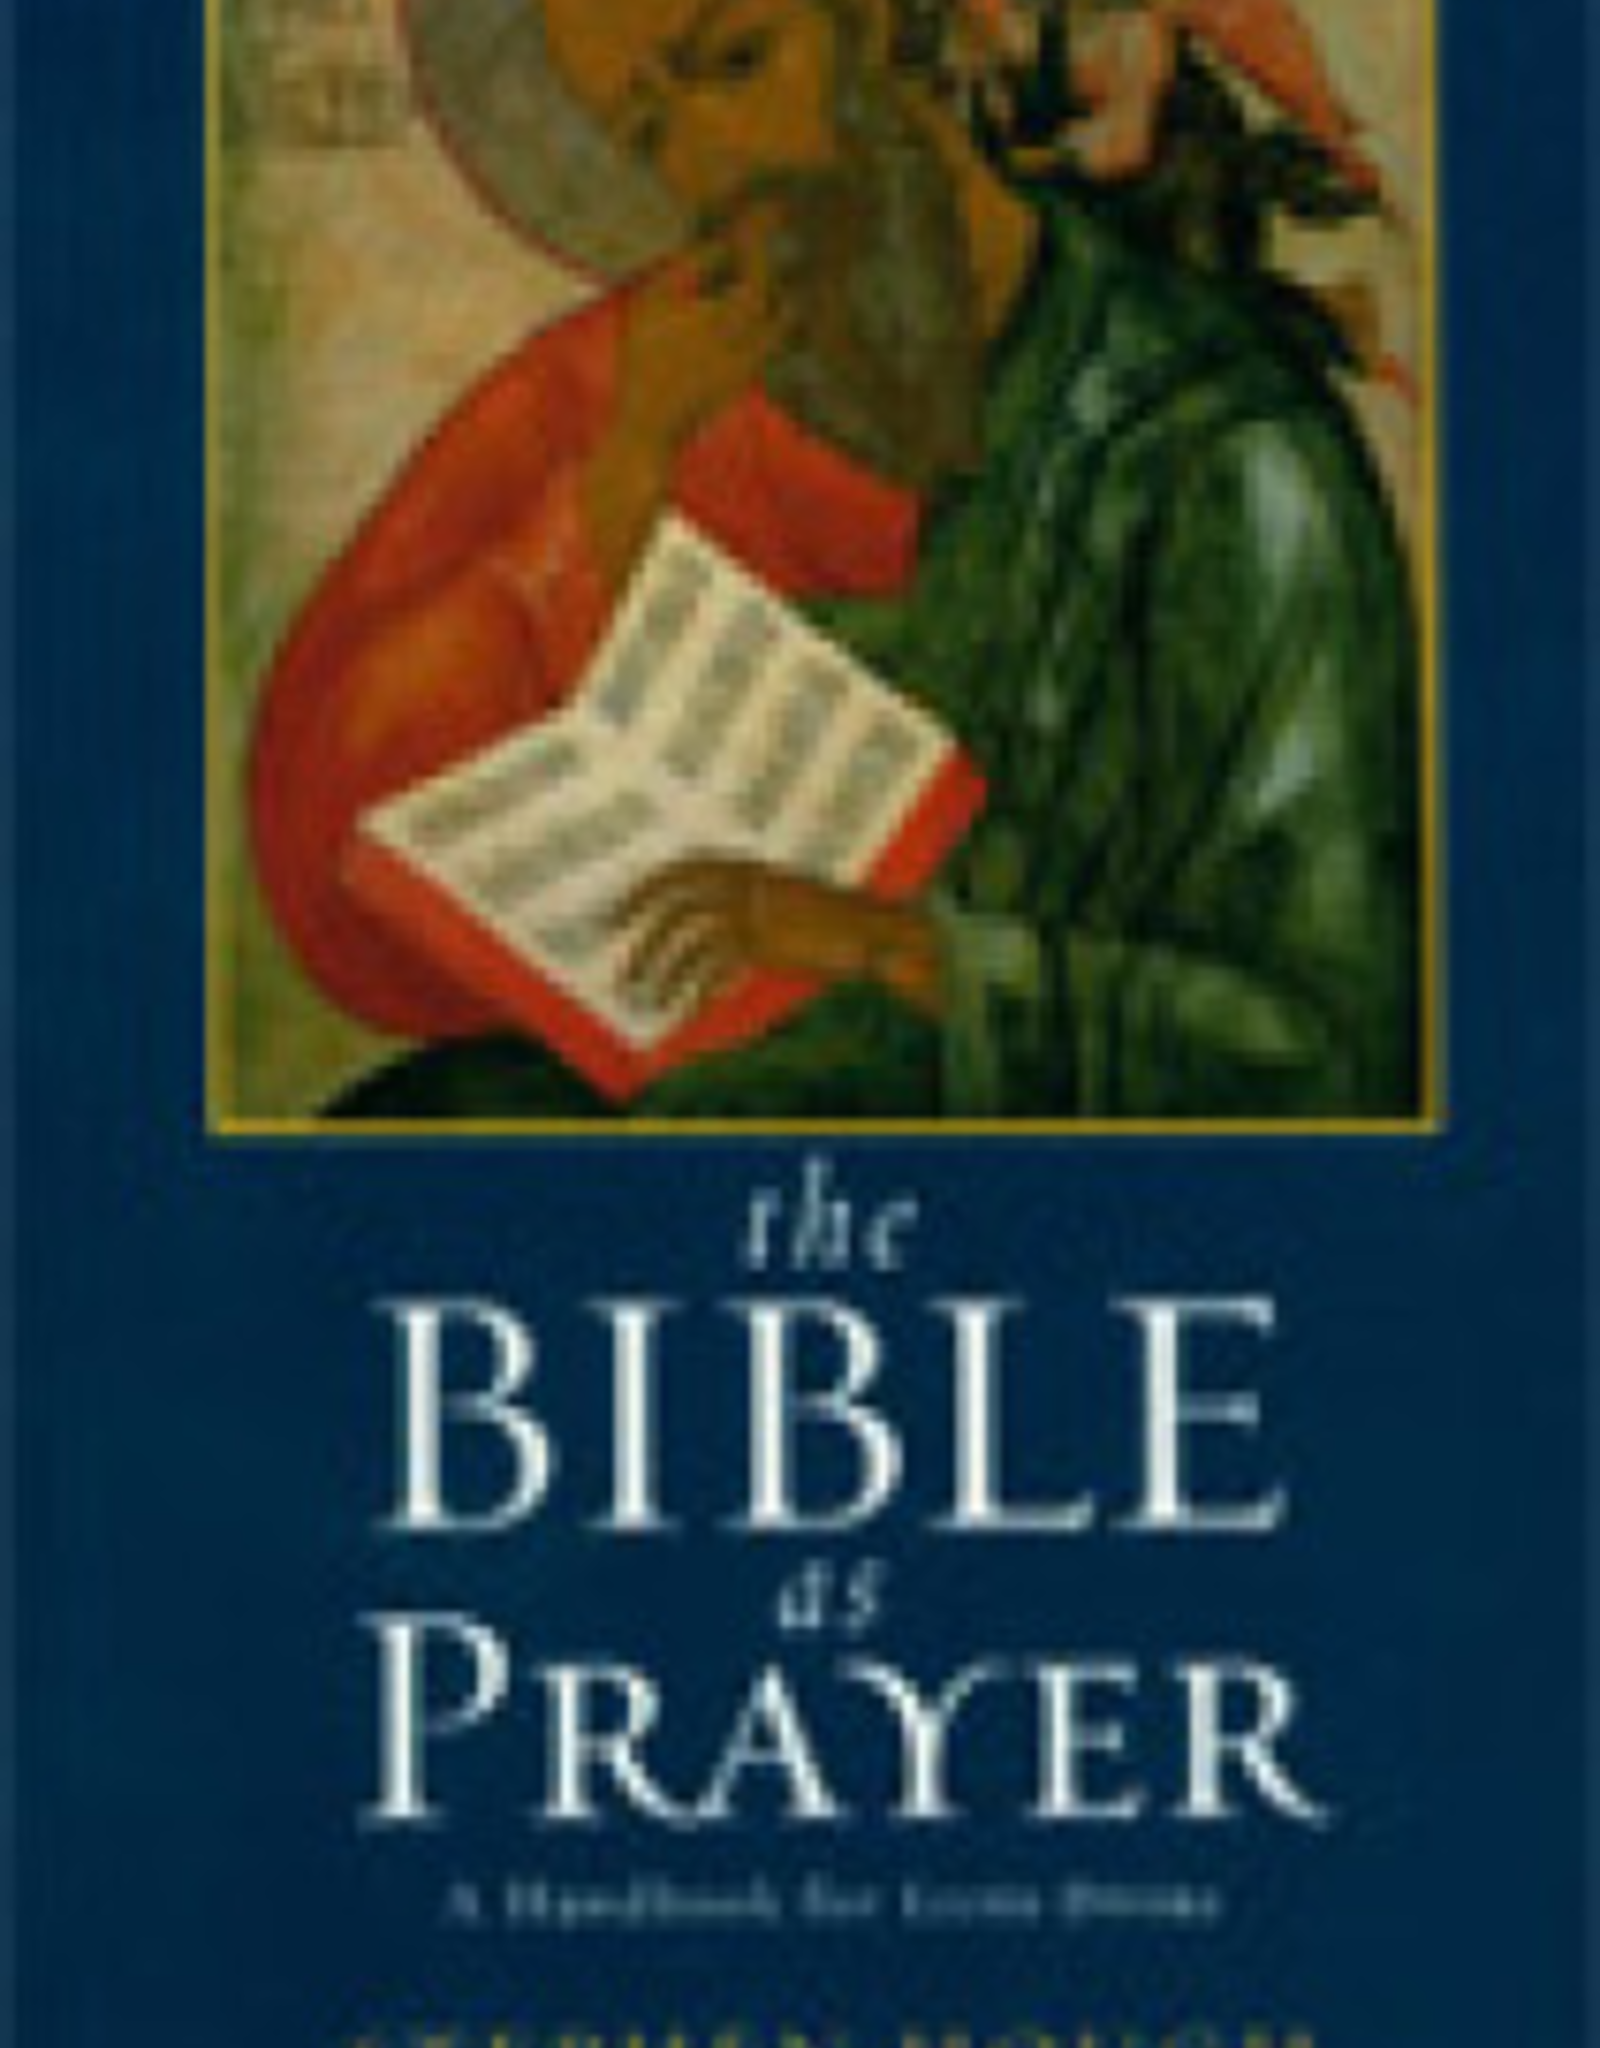 Paulist Press The Bible as Prayer:  A Handbook for Lectio Divina, by Stephen Hough (paperback)